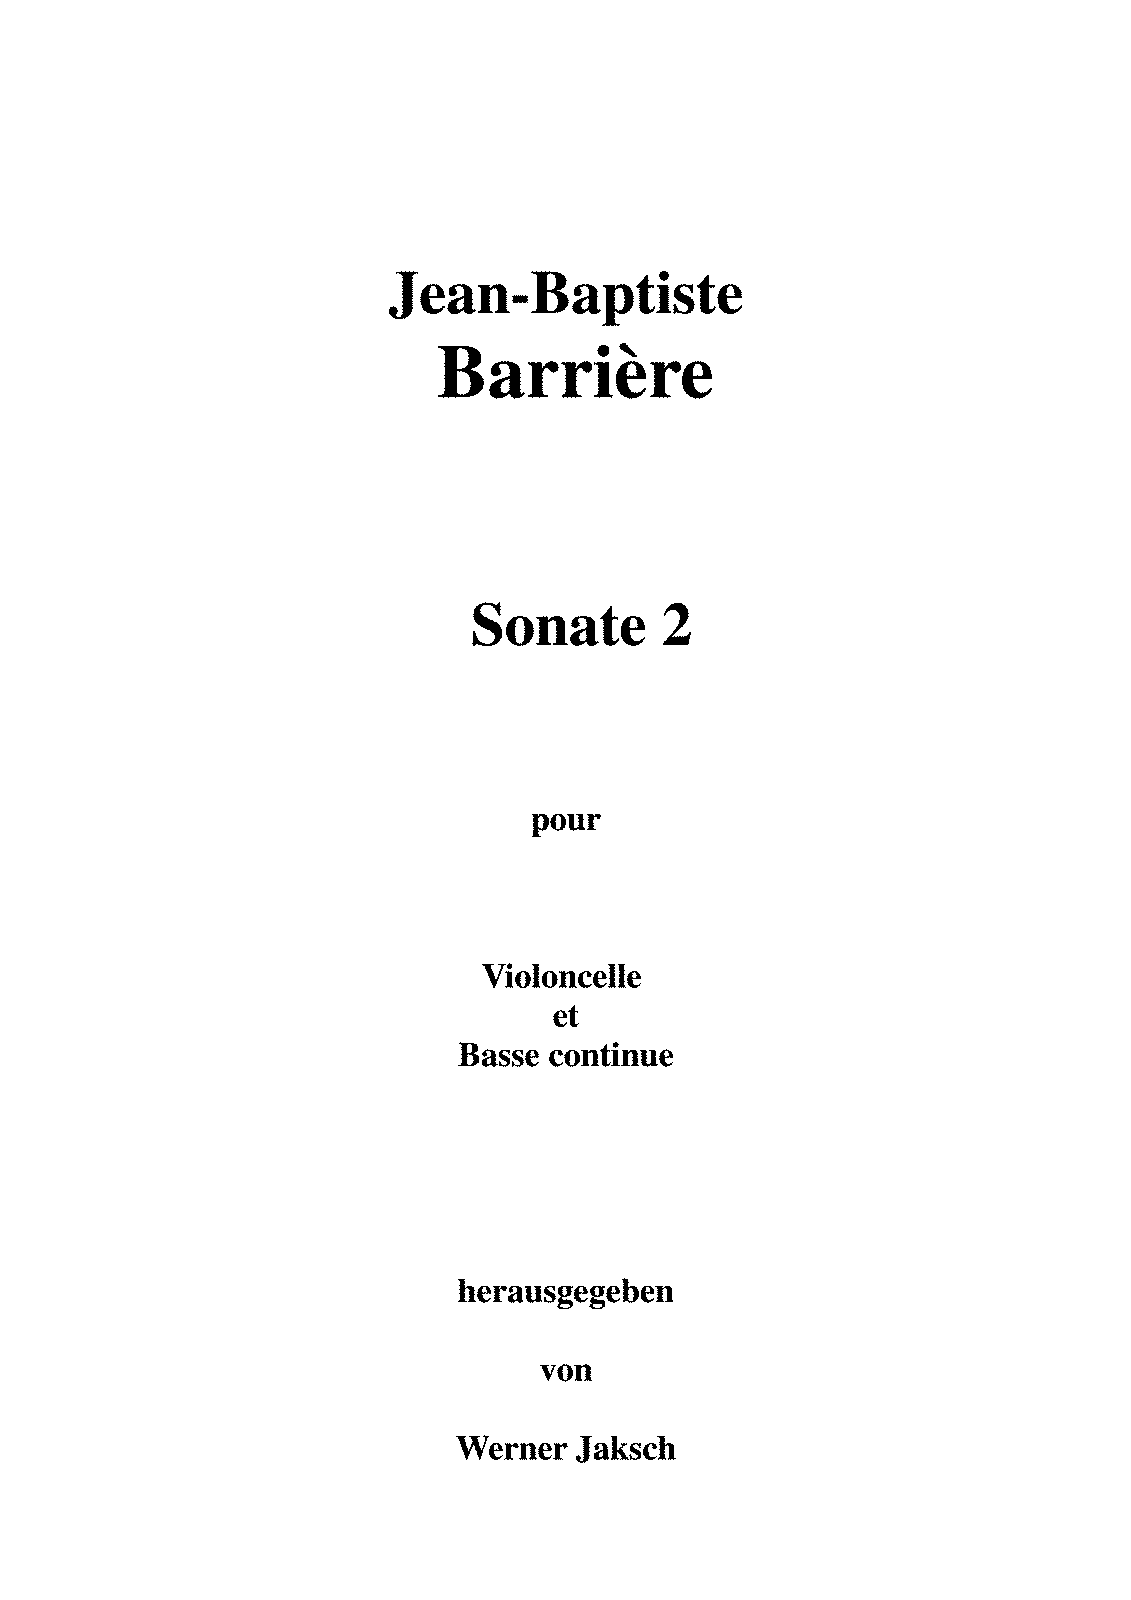 PMLP122854-barriere2 Part.pdf